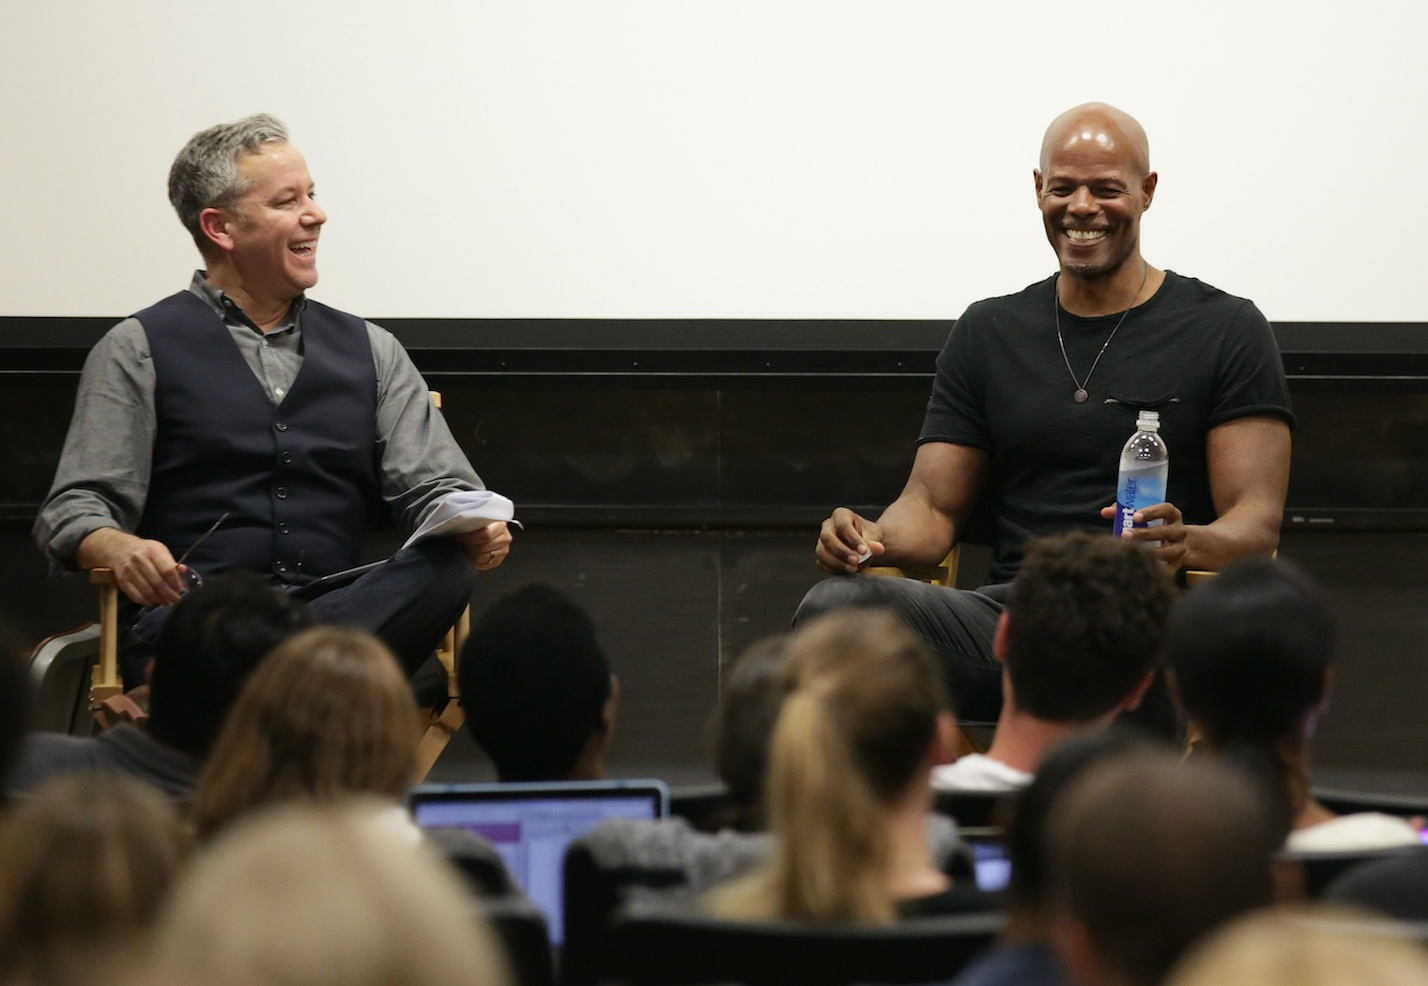 Interviewing trailblazing actor, comedian and filmmaker Keenen Ivory Wayans at UCLA.